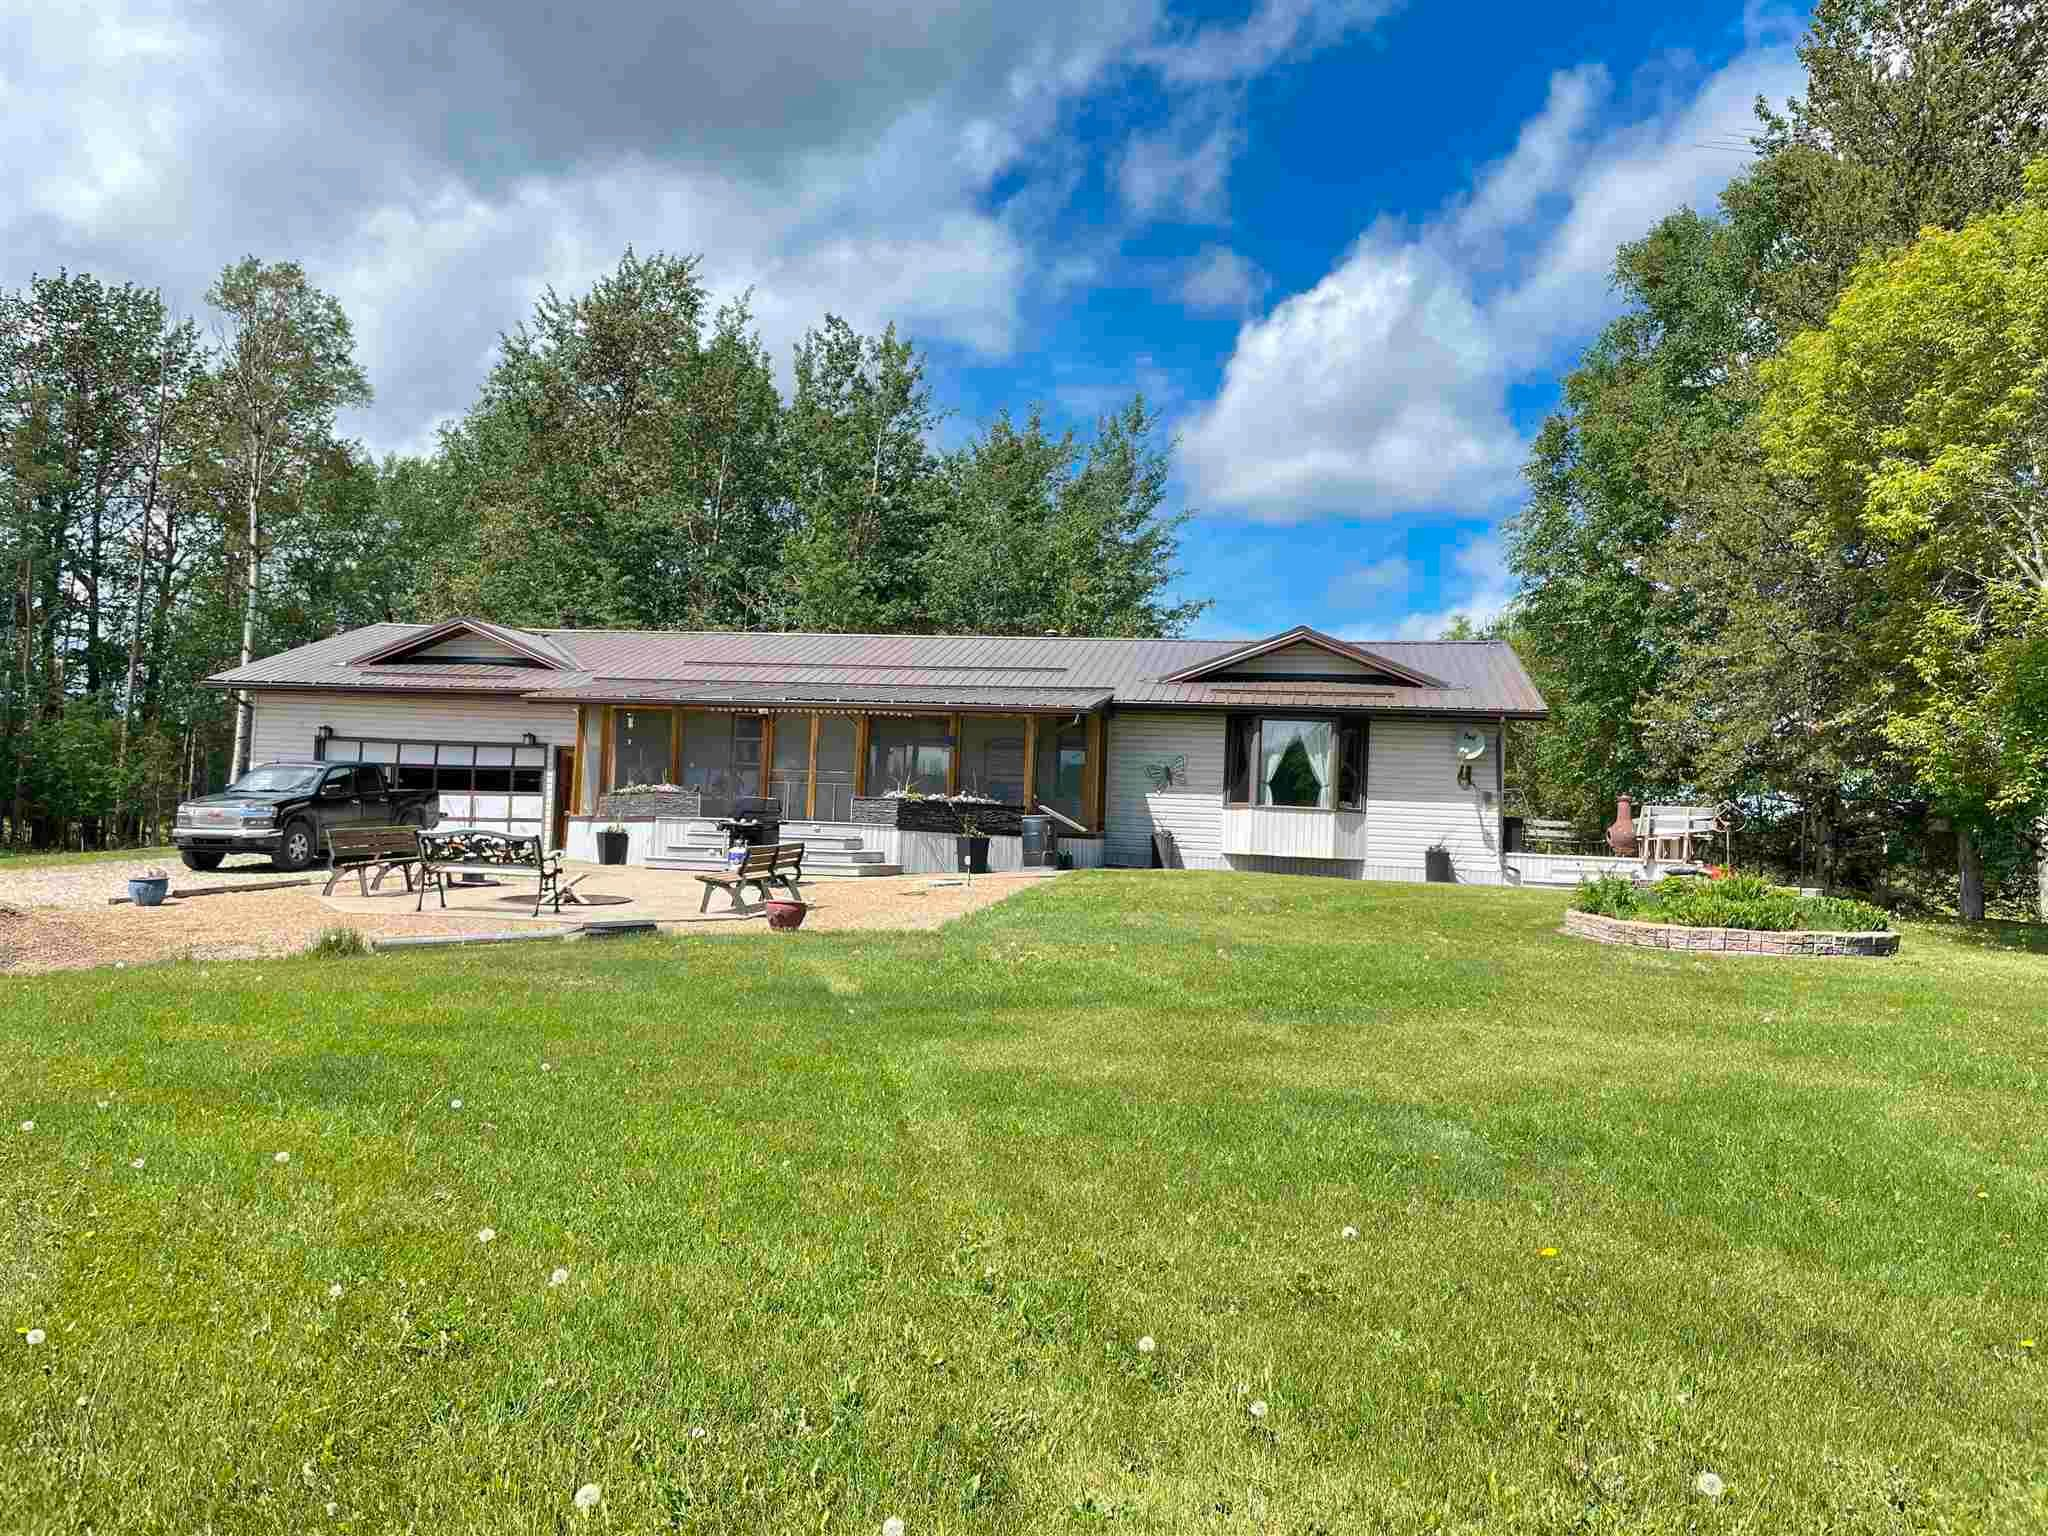 Main Photo: 64304 RGE RD 20: Rural Westlock County House for sale : MLS®# E4251071